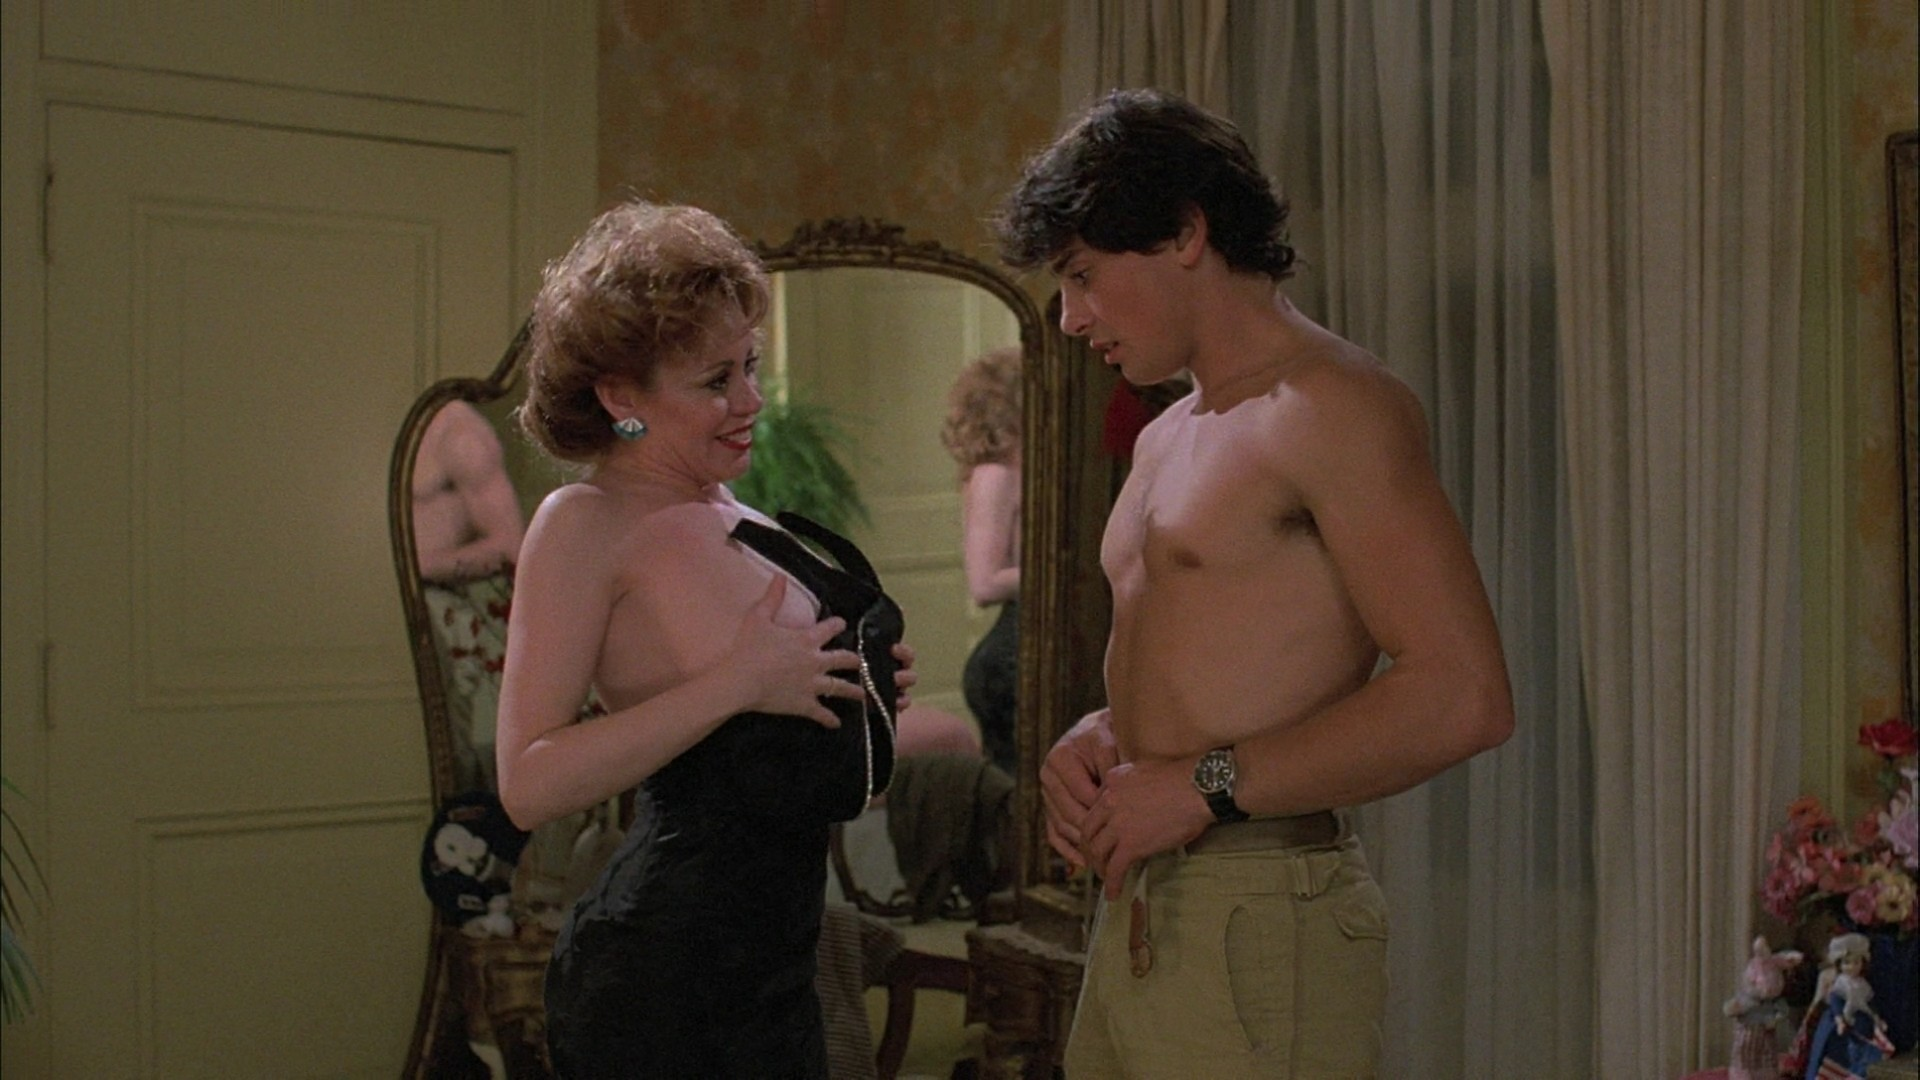 Caren Kaye Photos my tutor (1983) | filmfed - movies, ratings, reviews, and